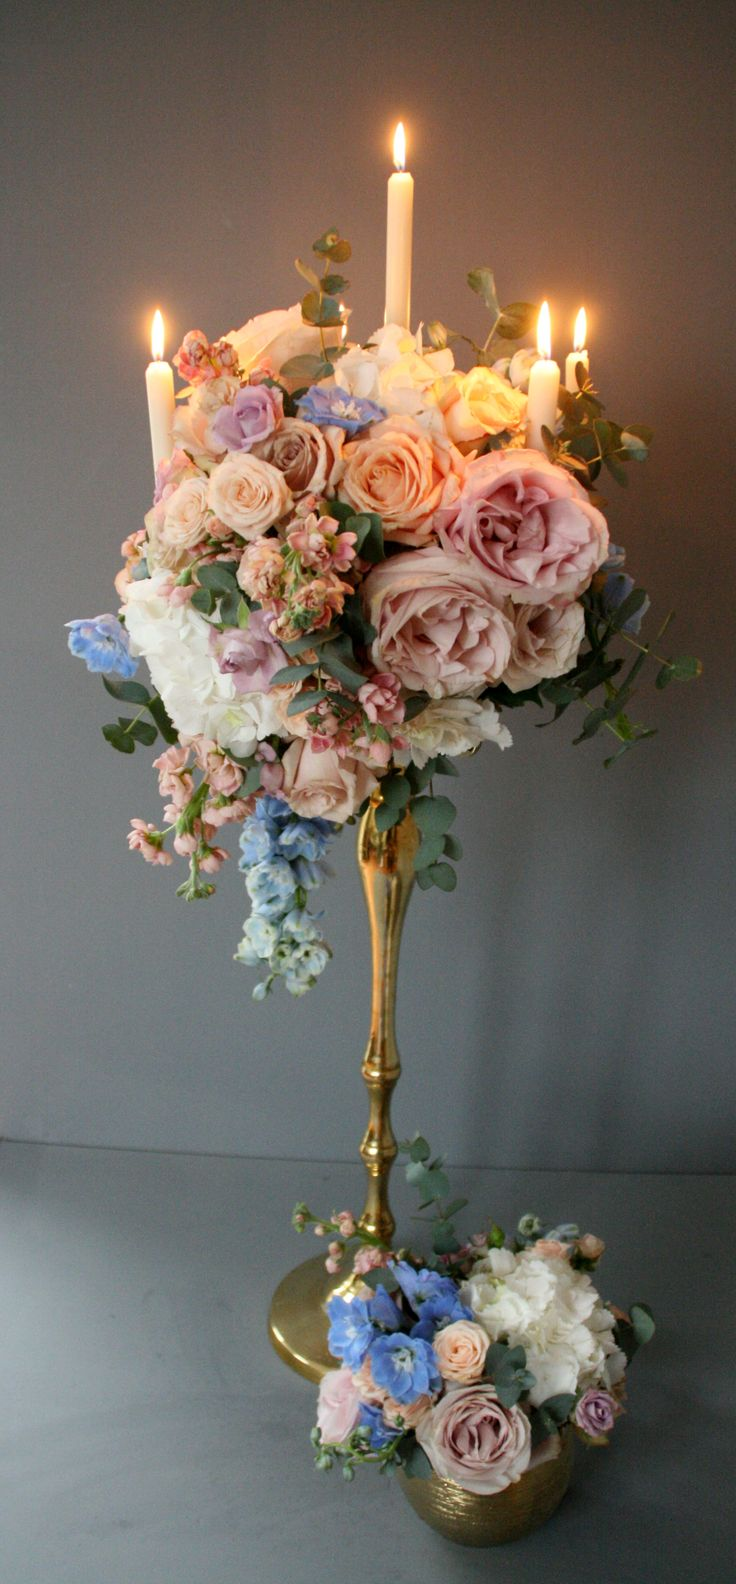 Best candelabra flowers ideas on pinterest wedding